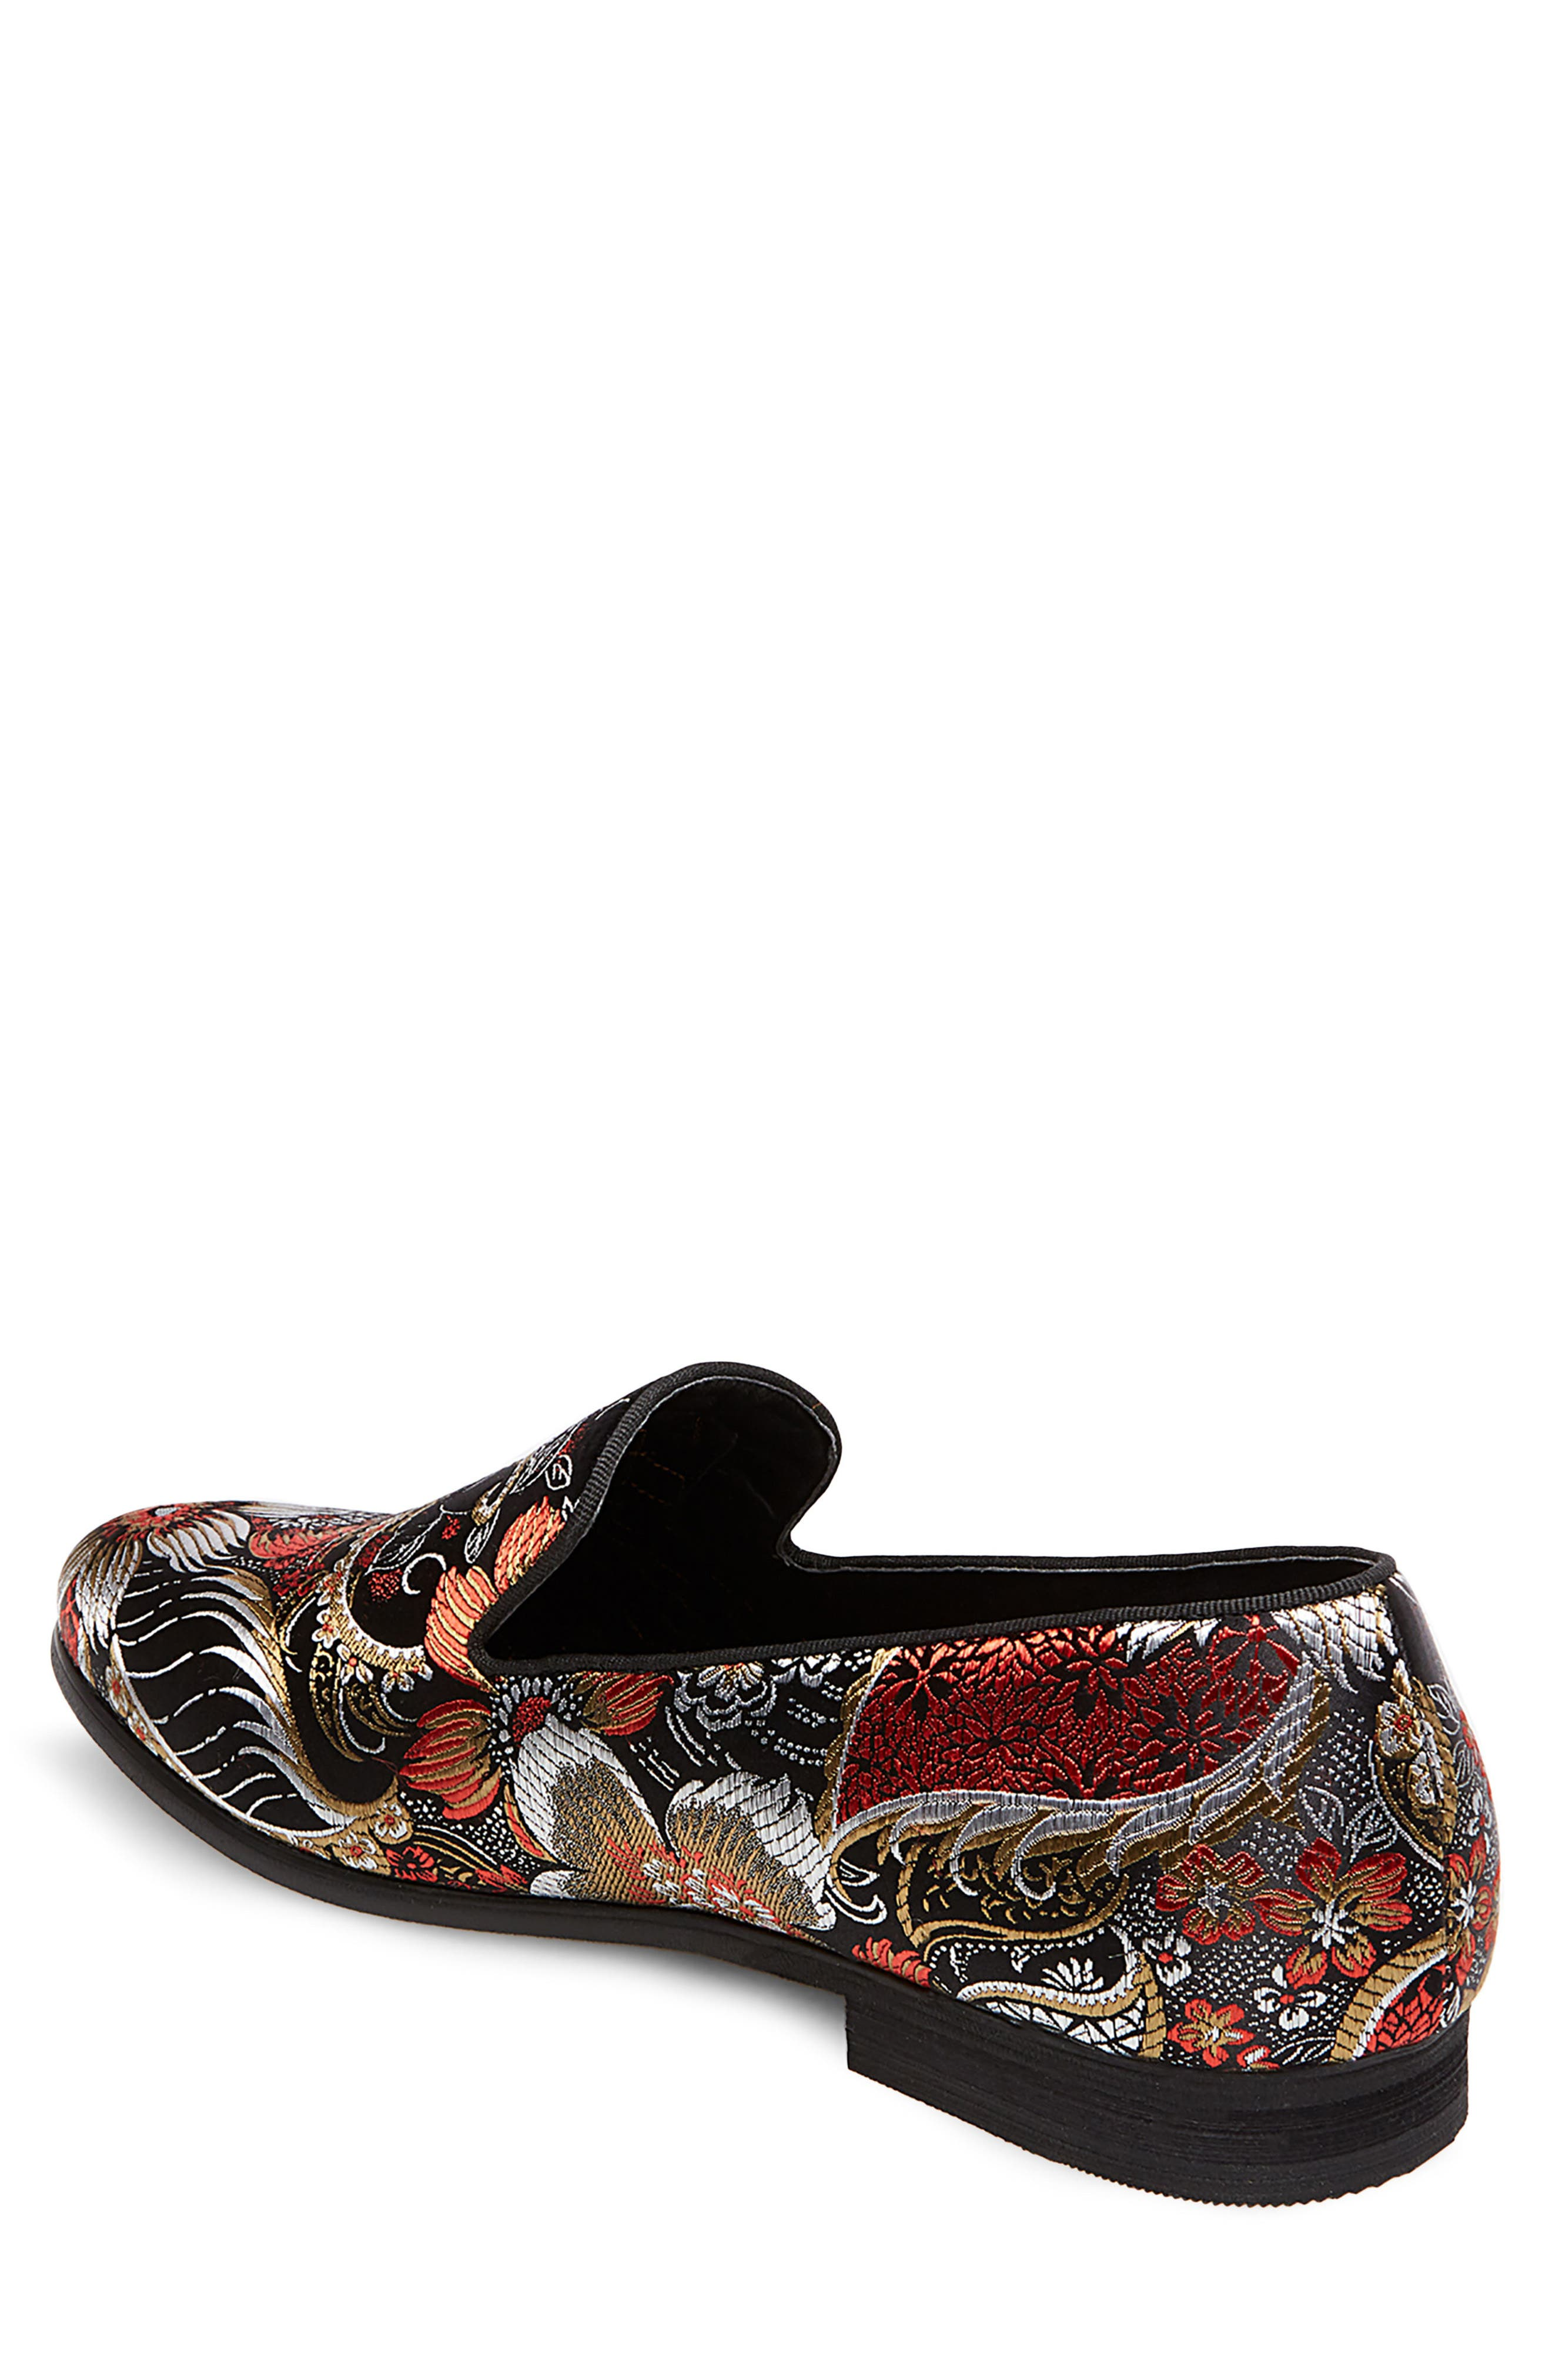 Cypress Venetian Loafer,                             Alternate thumbnail 2, color,                             Red Multi